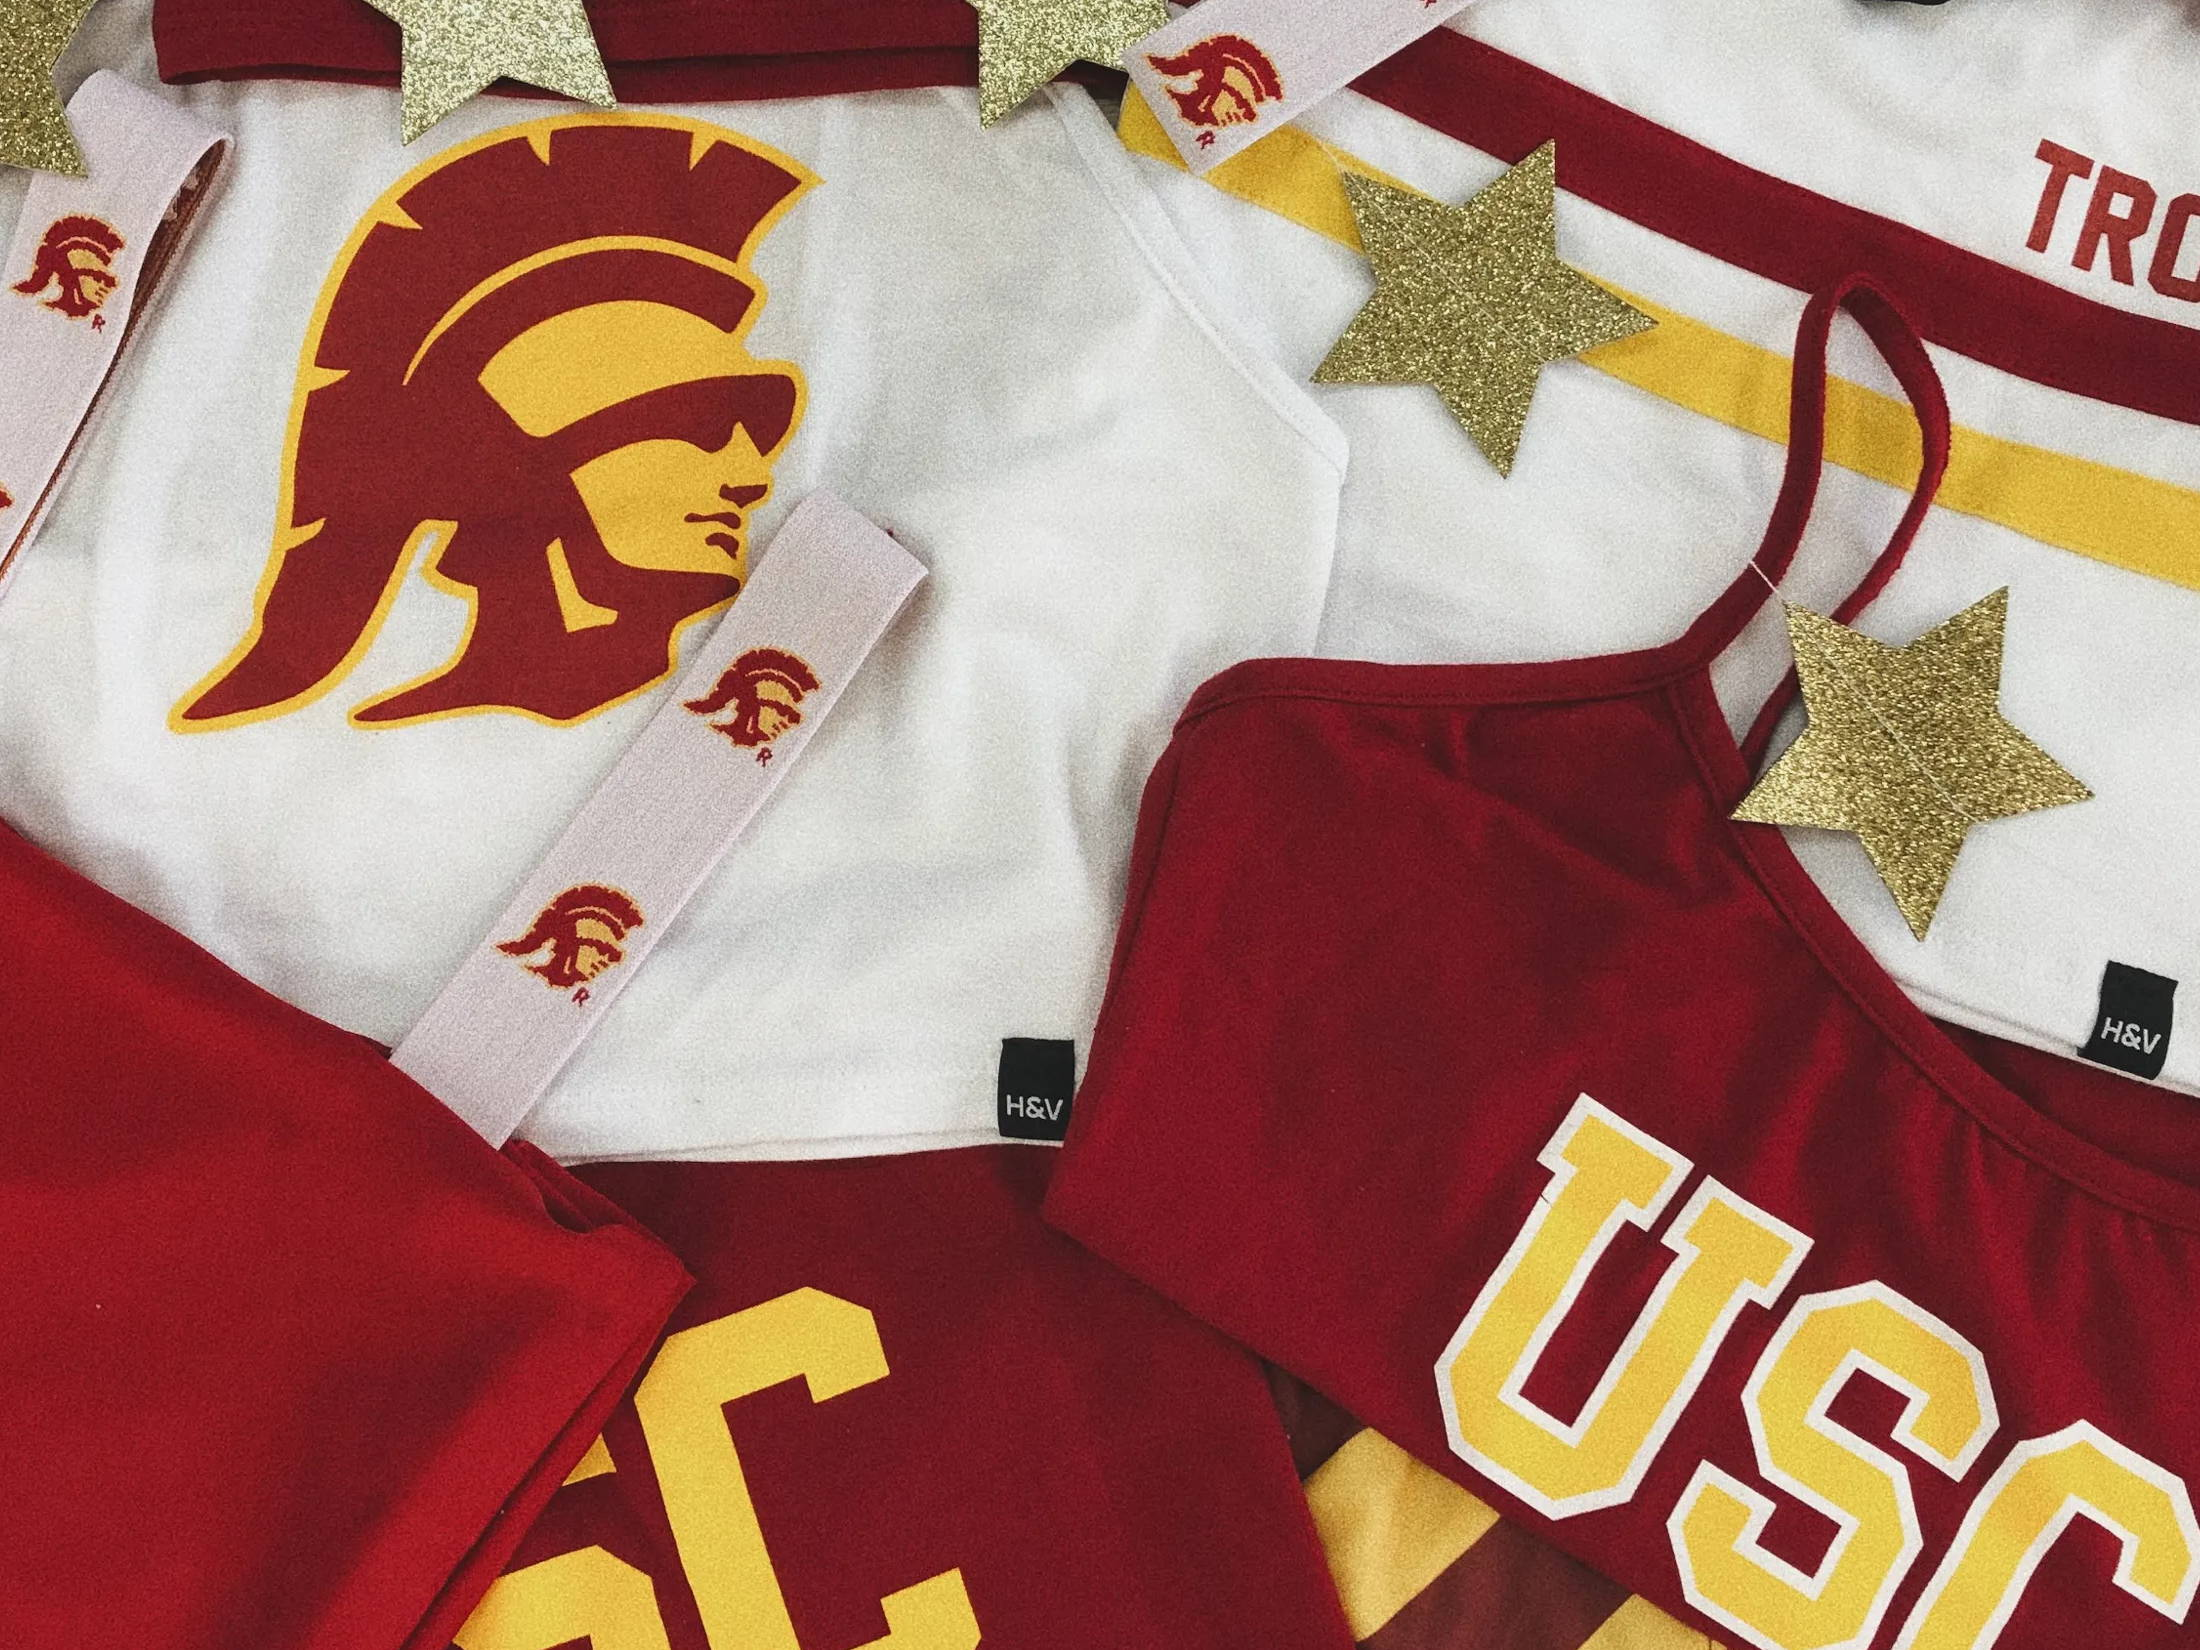 Shop USC cute gameday and tailgate apparel